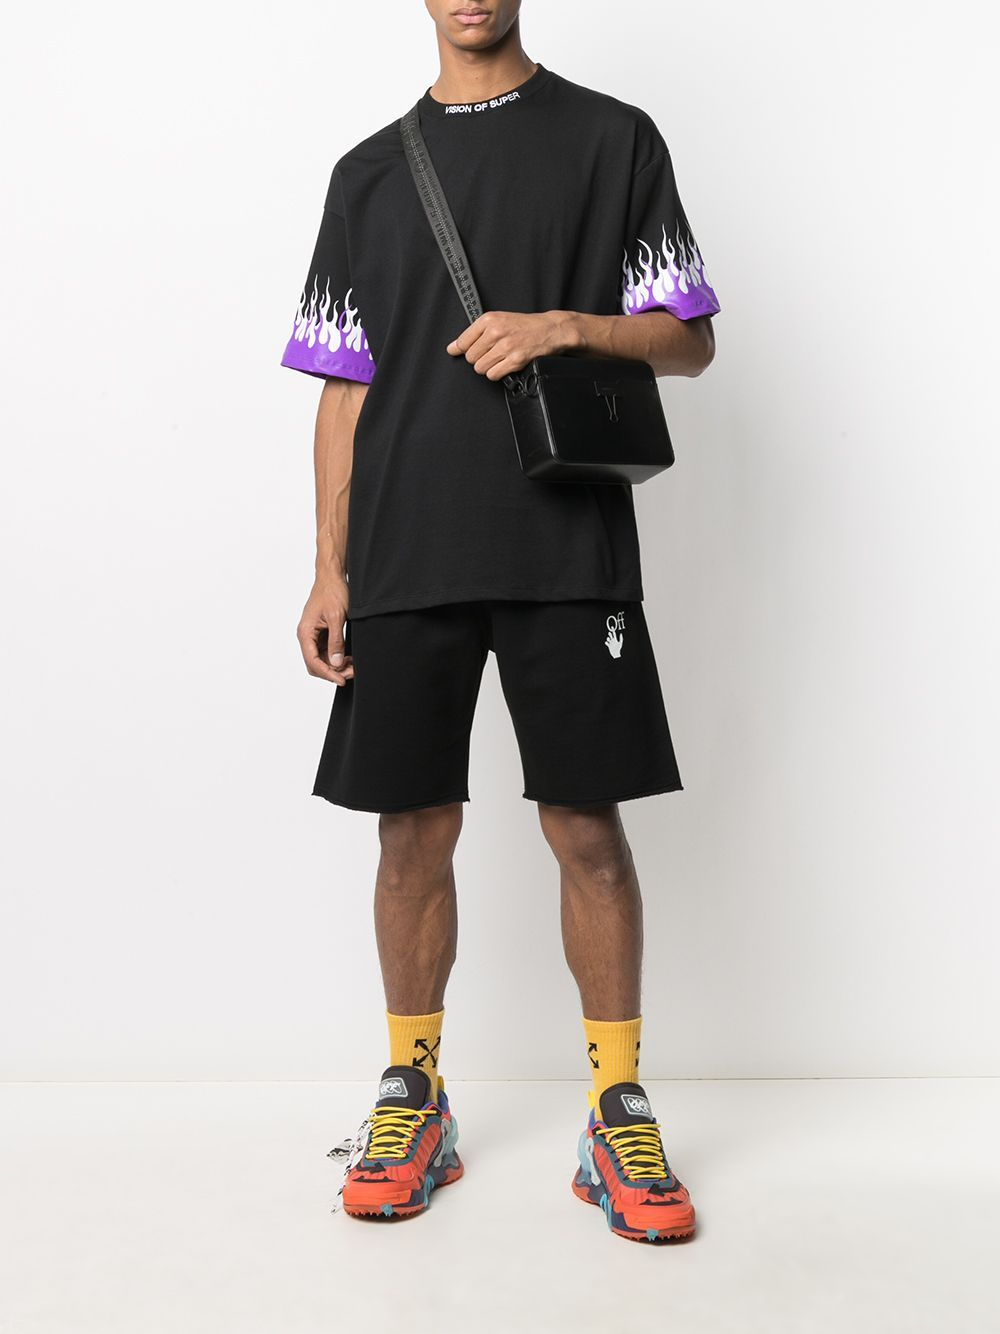 OFF-WHITE Marker Print Shorts Black/Fuchsia